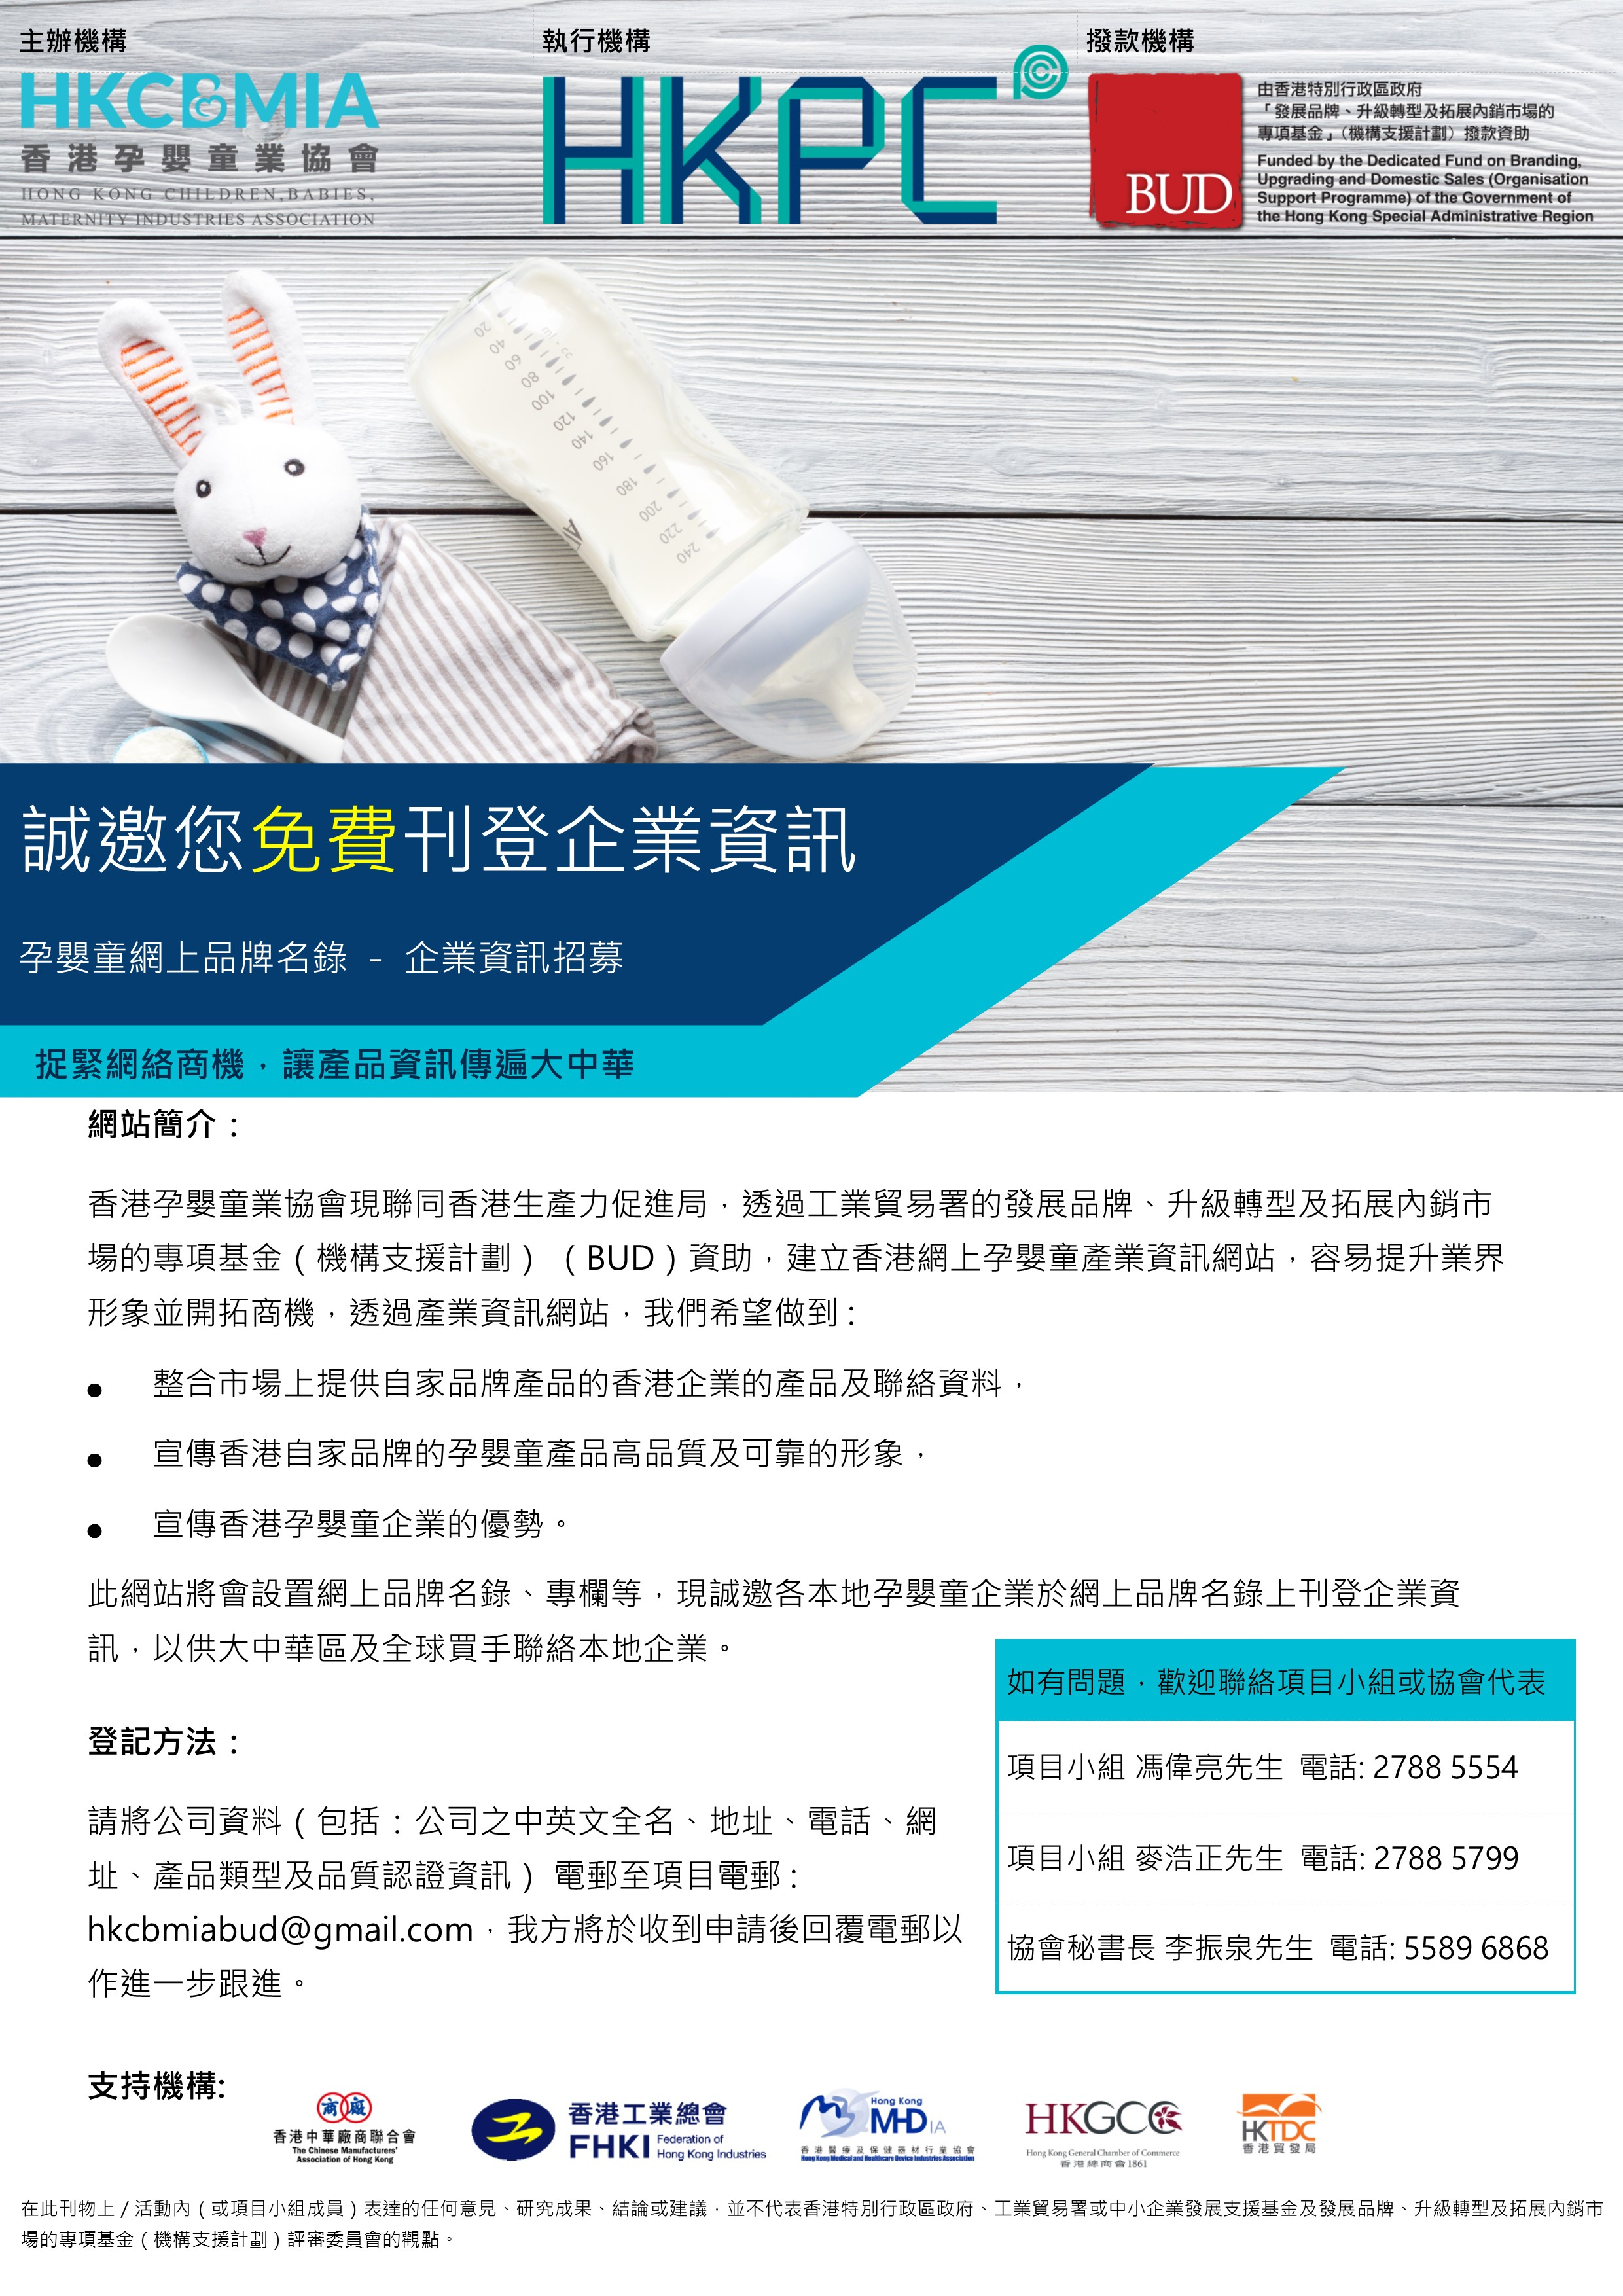 Hong Kong Maternity, Infant and Child Industry Online Database – Welcoming industry members to publish information